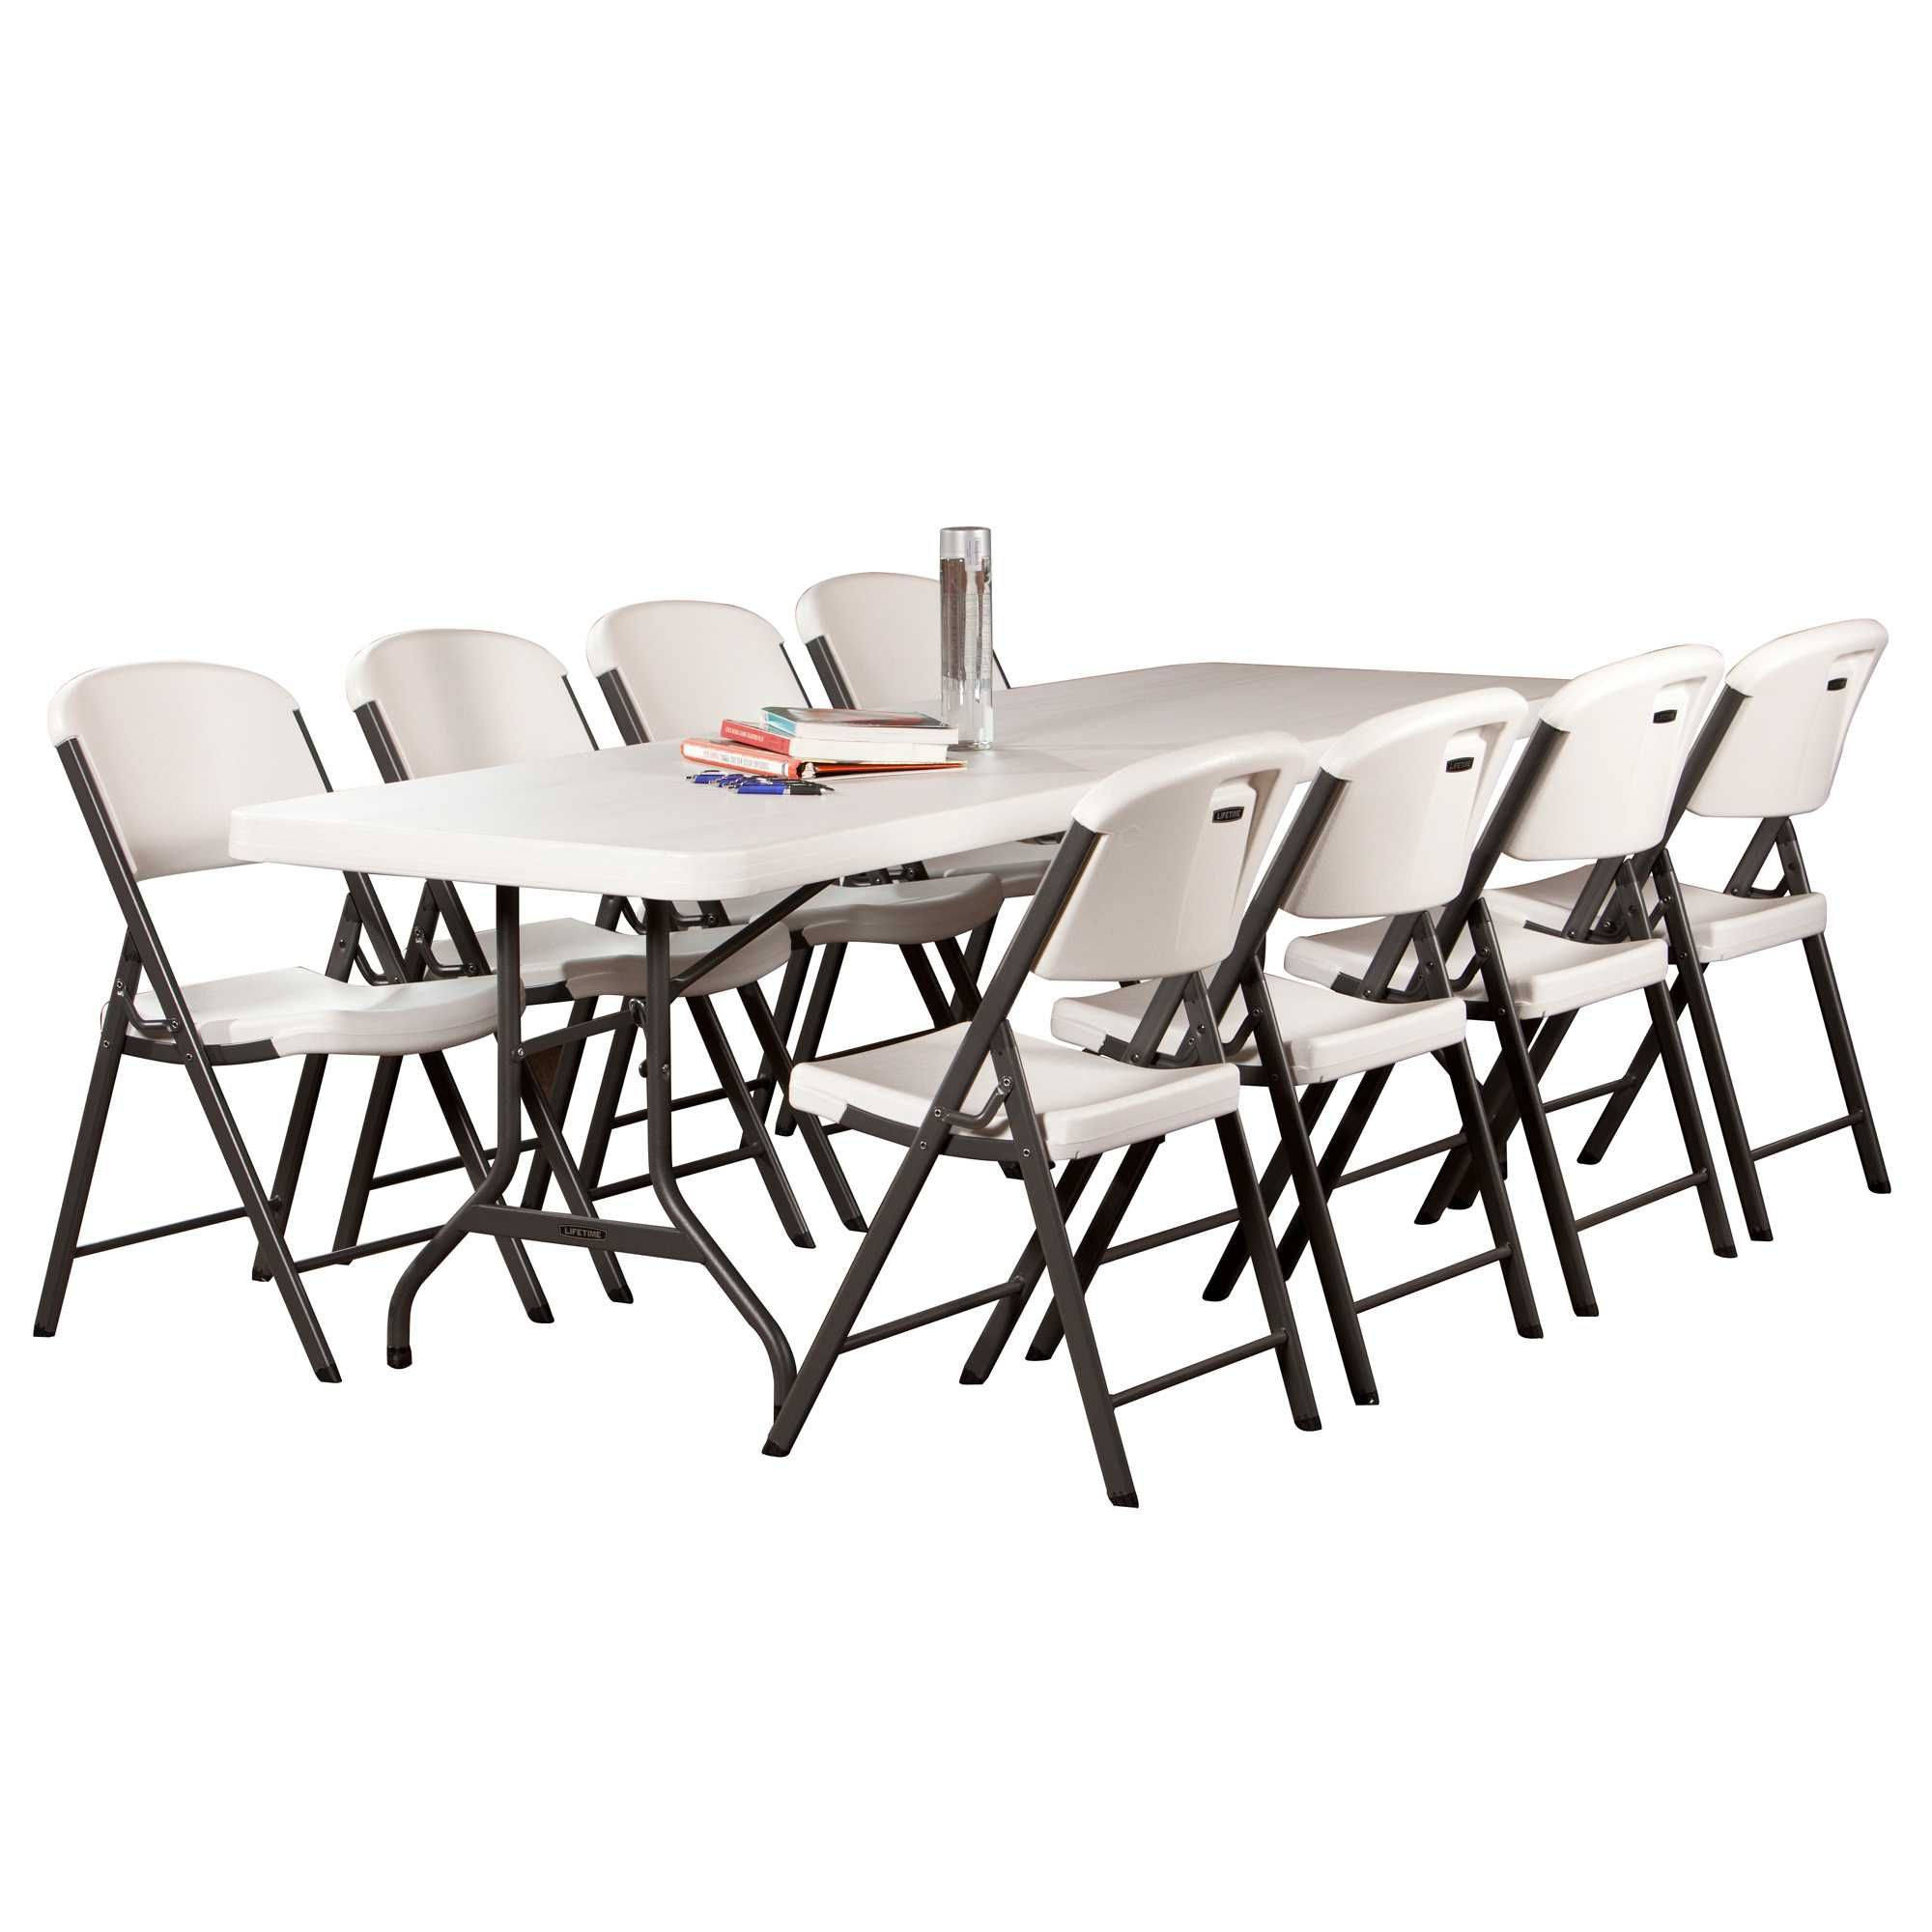 Lifetime 8 Foot Commercial Folding Table Features A 96 X 30